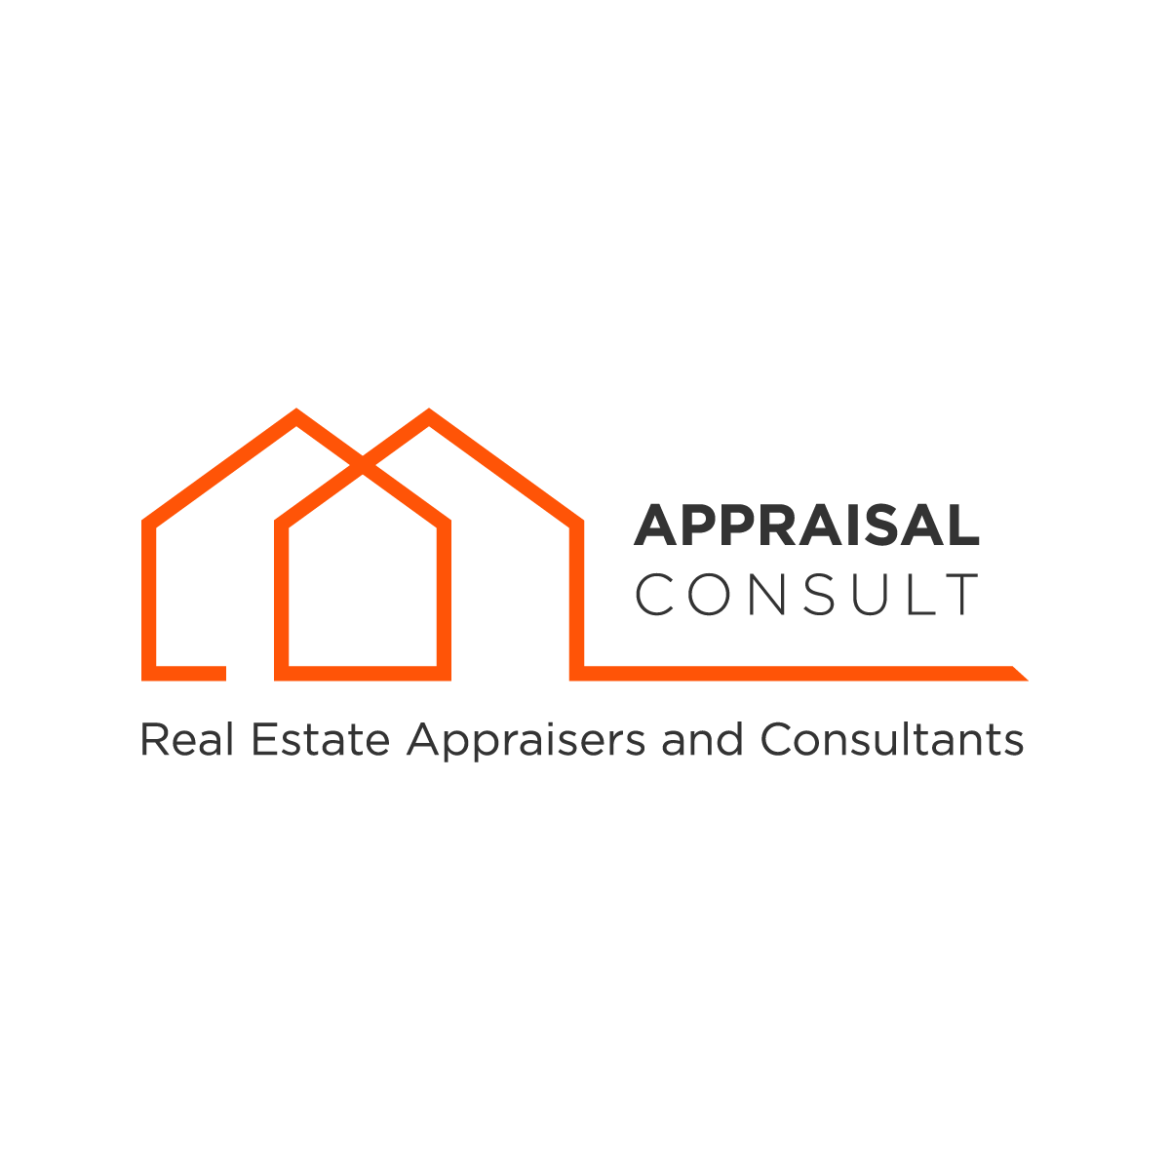 Real estate home appraisal in Mississauga (logo concept for a home appraisal company)